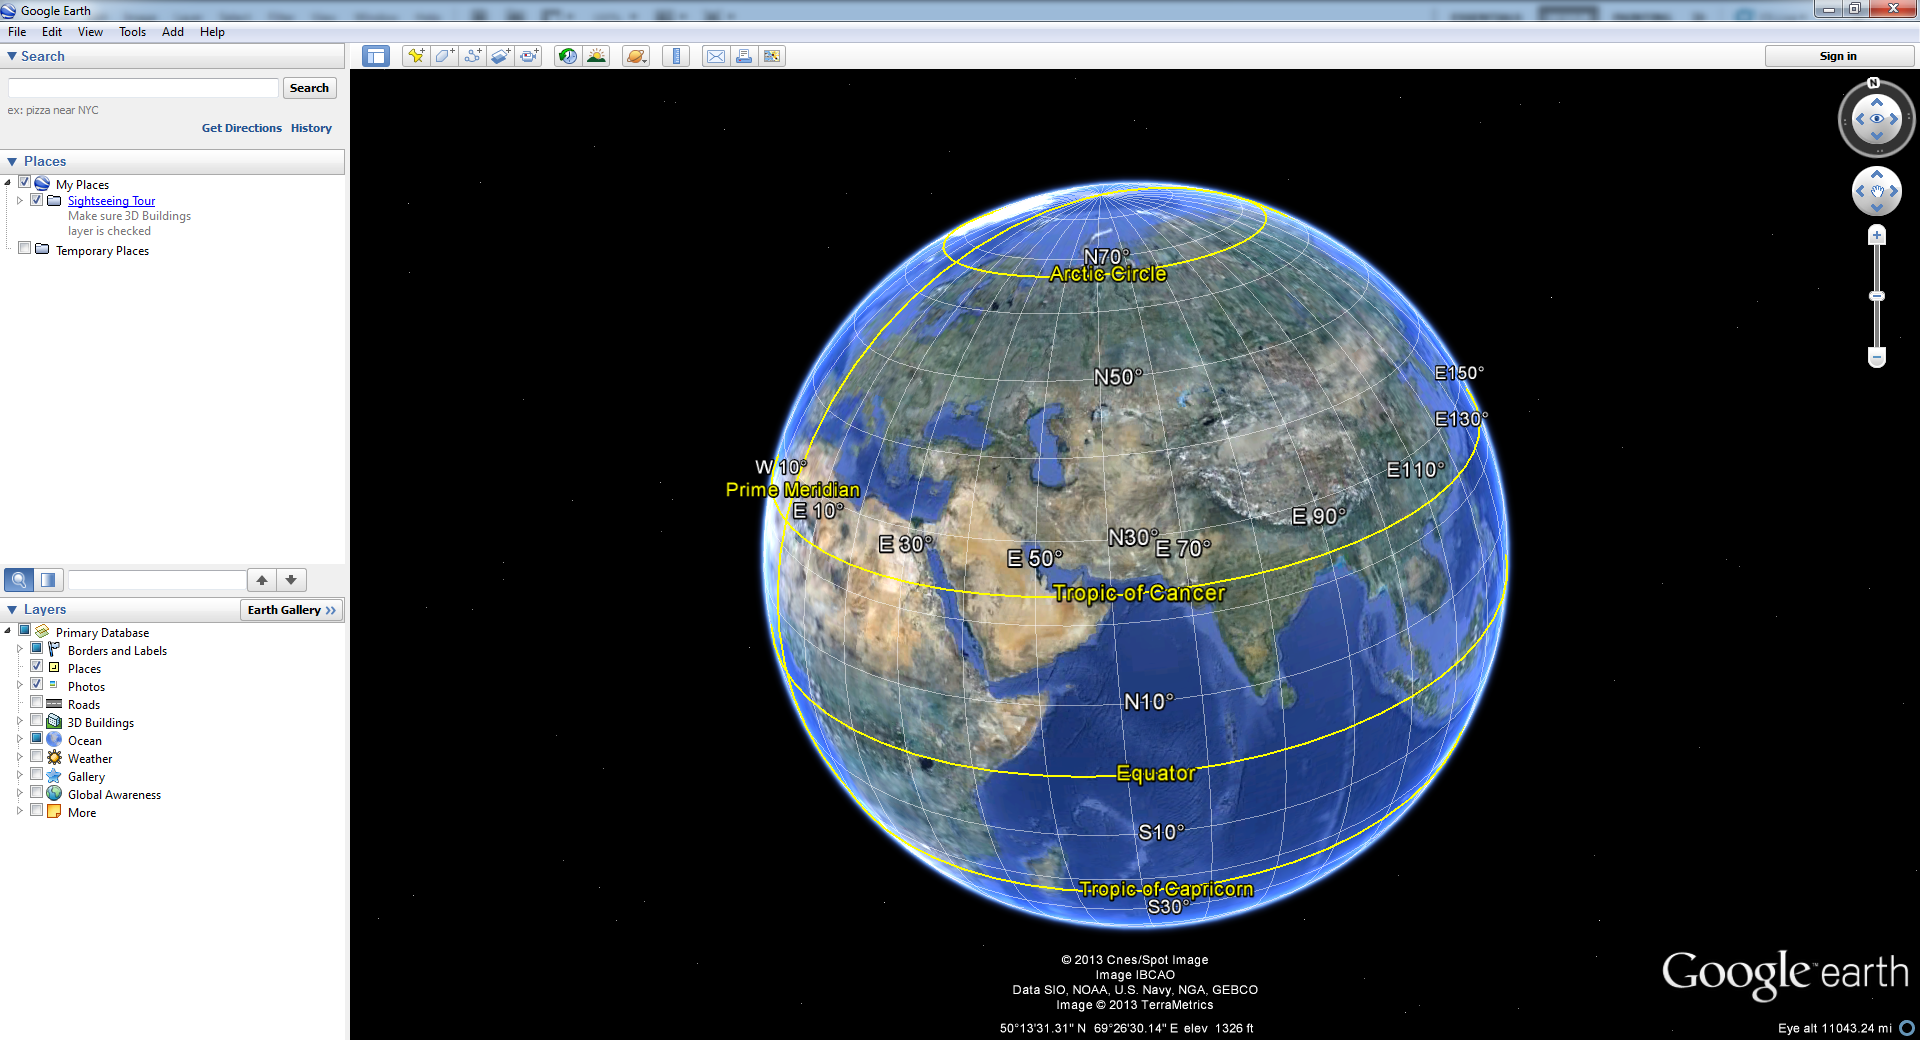 Google Earth Borders as Google Maps Polygons | Devin R ... on goolge maps, msn maps, ipad maps, waze maps, bing maps, topographic maps, amazon fire phone maps, iphone maps, aerial maps, gogole maps, aeronautical maps, search maps, stanford university maps, googlr maps, microsoft maps, android maps, gppgle maps, road map usa states maps, googie maps, online maps,